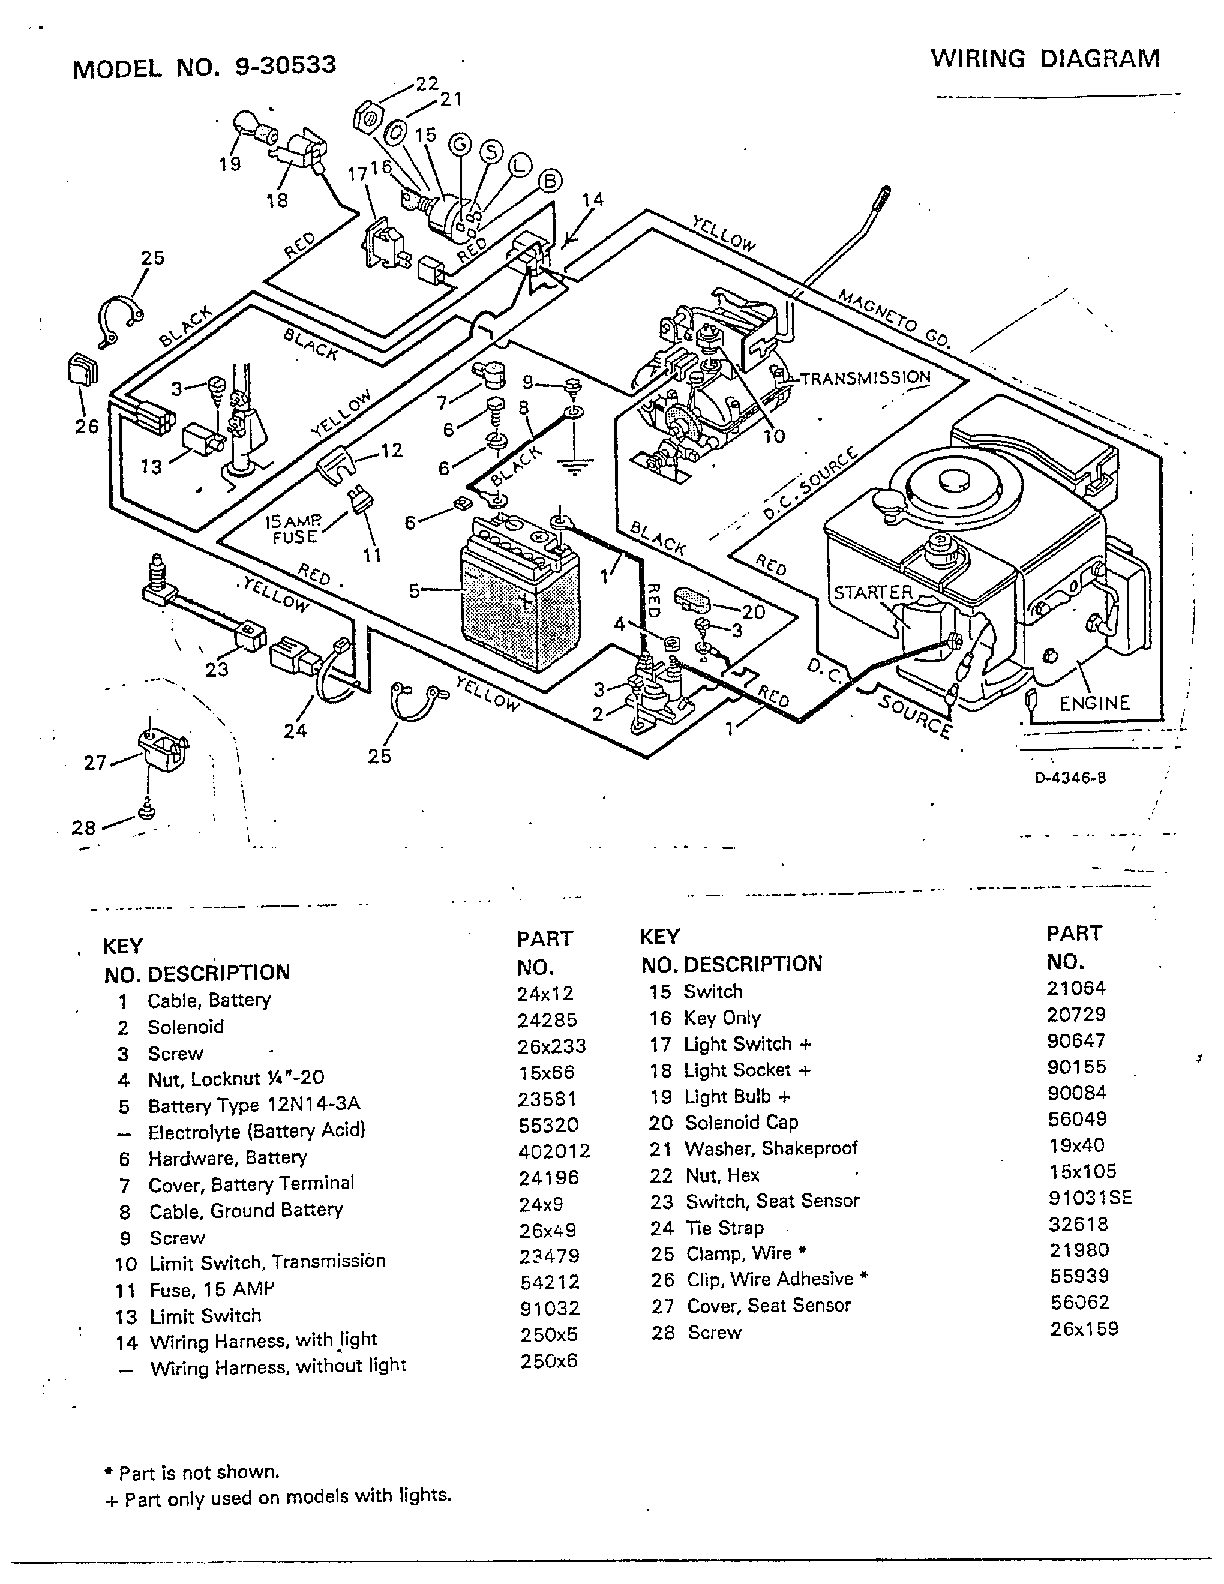 WL000265 00013?resize=665%2C861 wiring diagram murray riding lawn mower the wiring diagram wiring diagram for murray riding lawn mower at gsmx.co